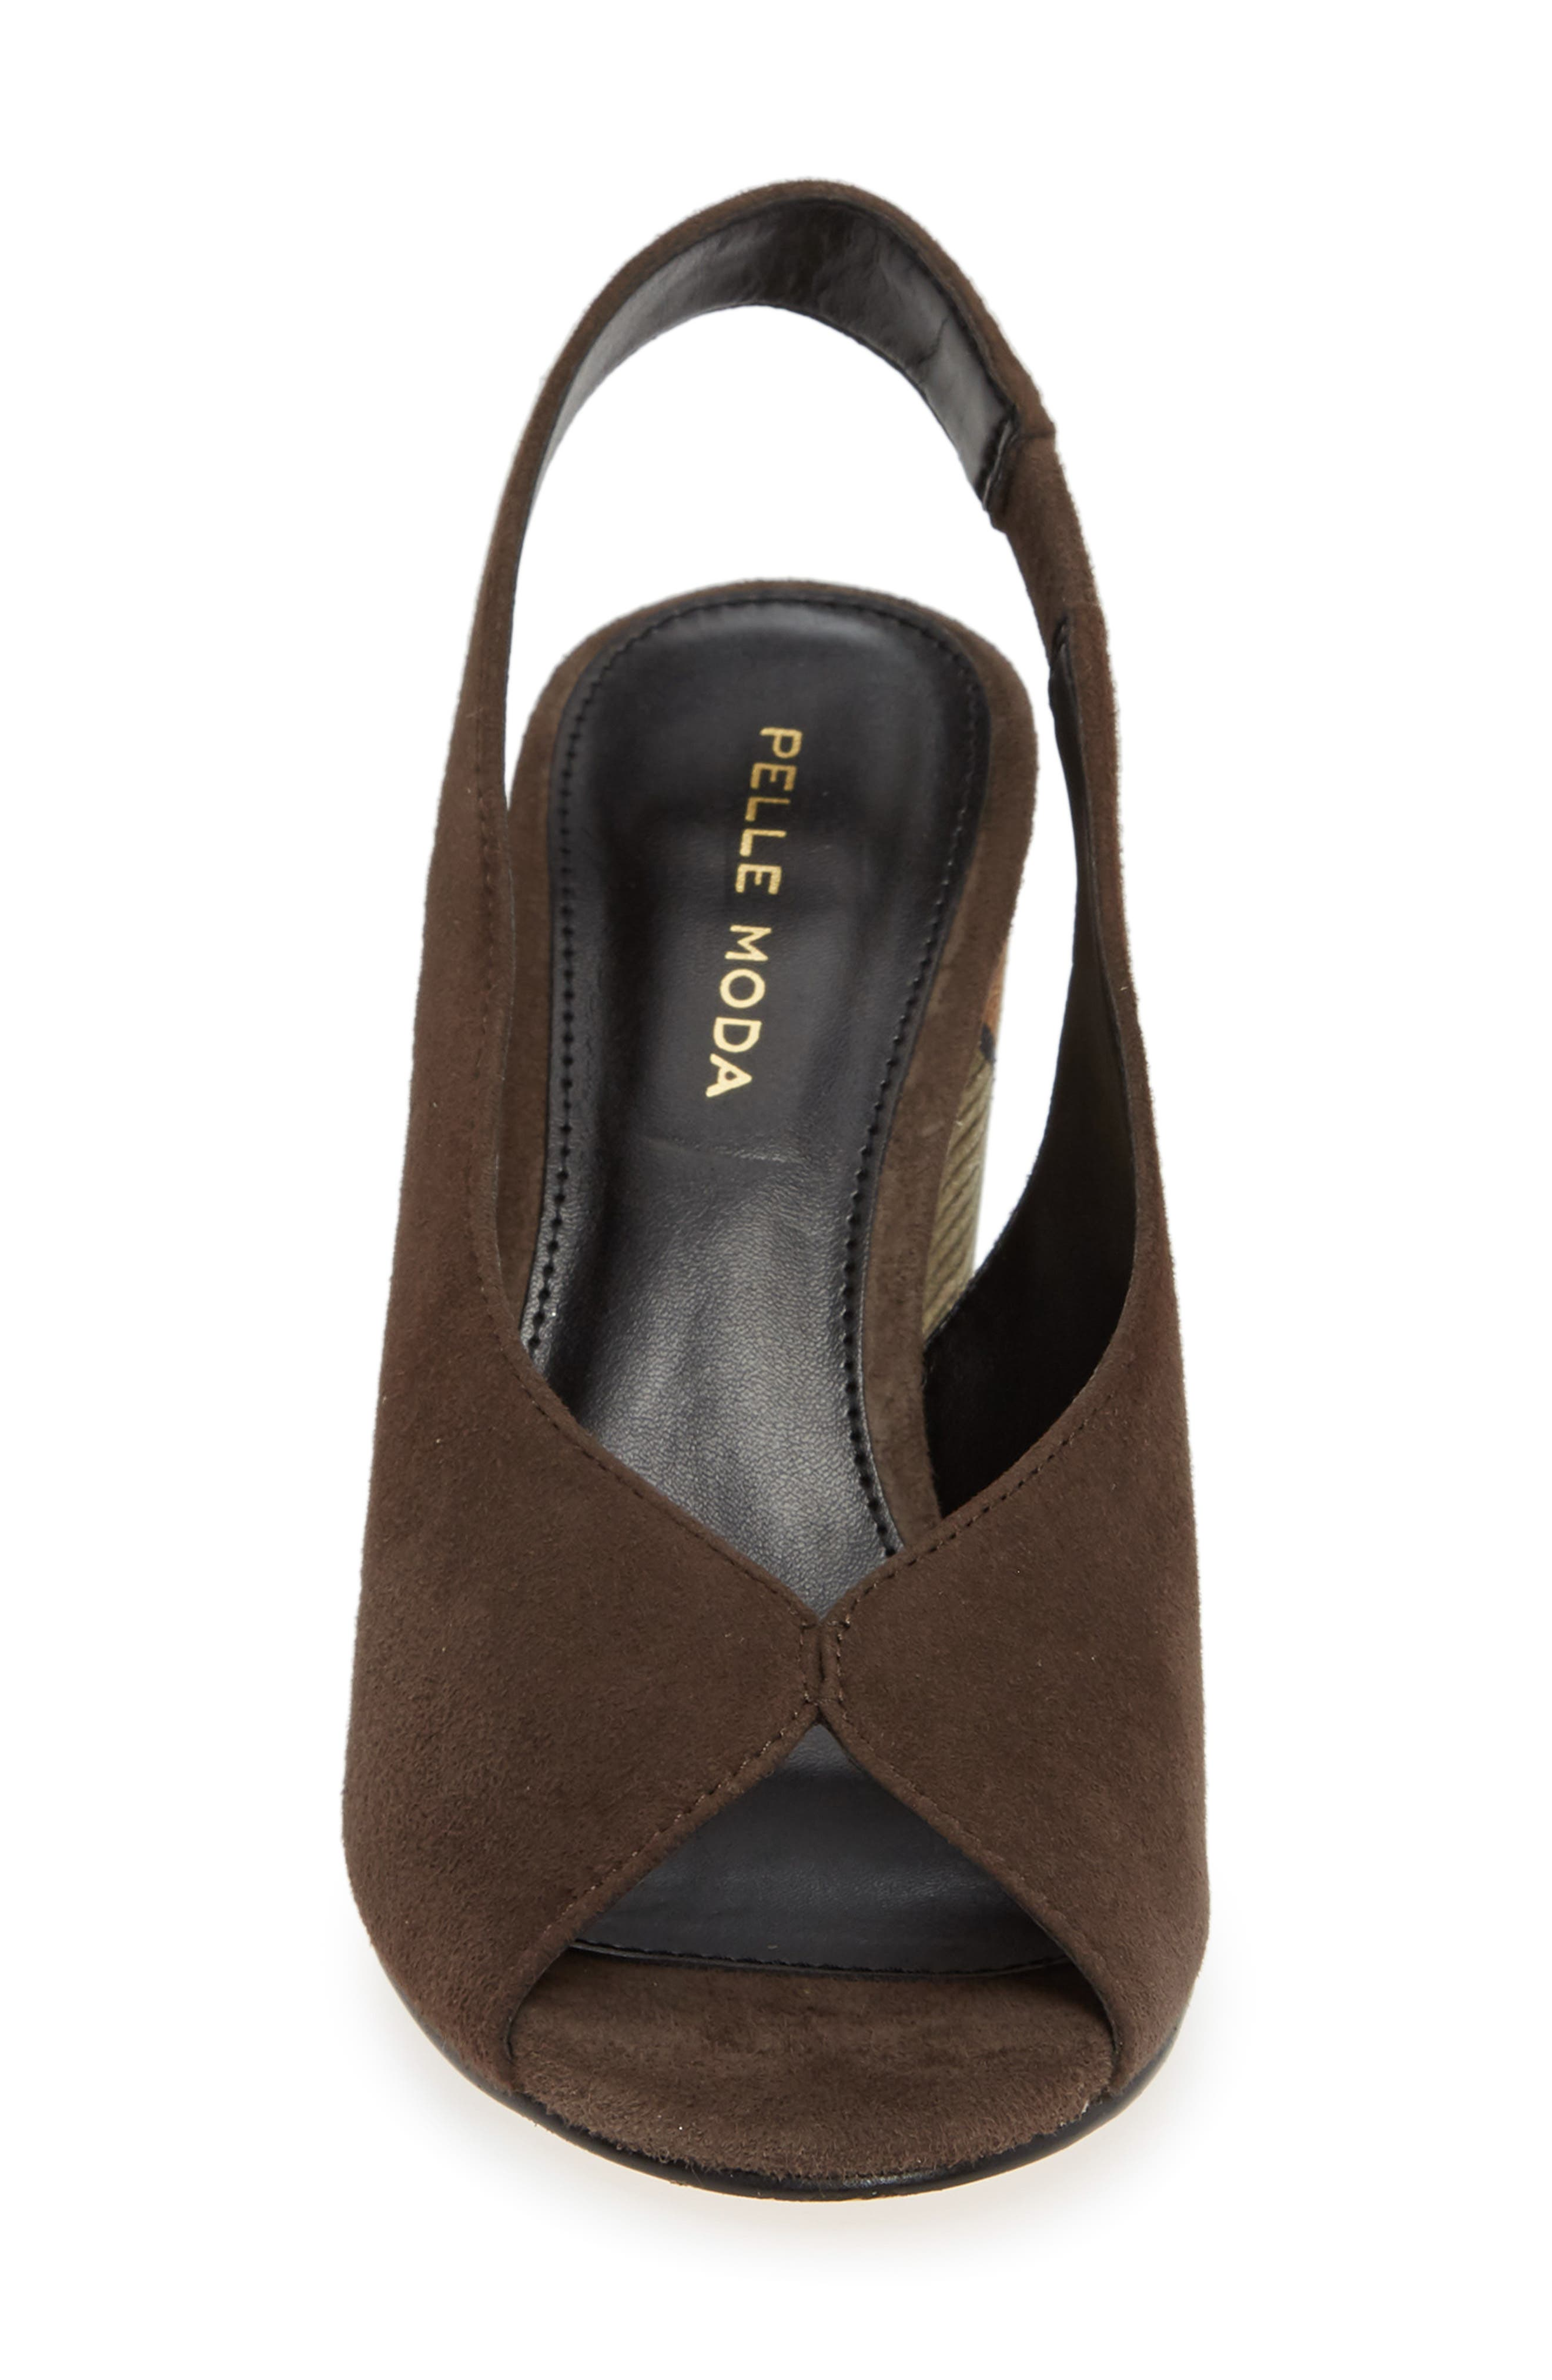 Honor Sandal,                             Alternate thumbnail 4, color,                             MINK SUEDE